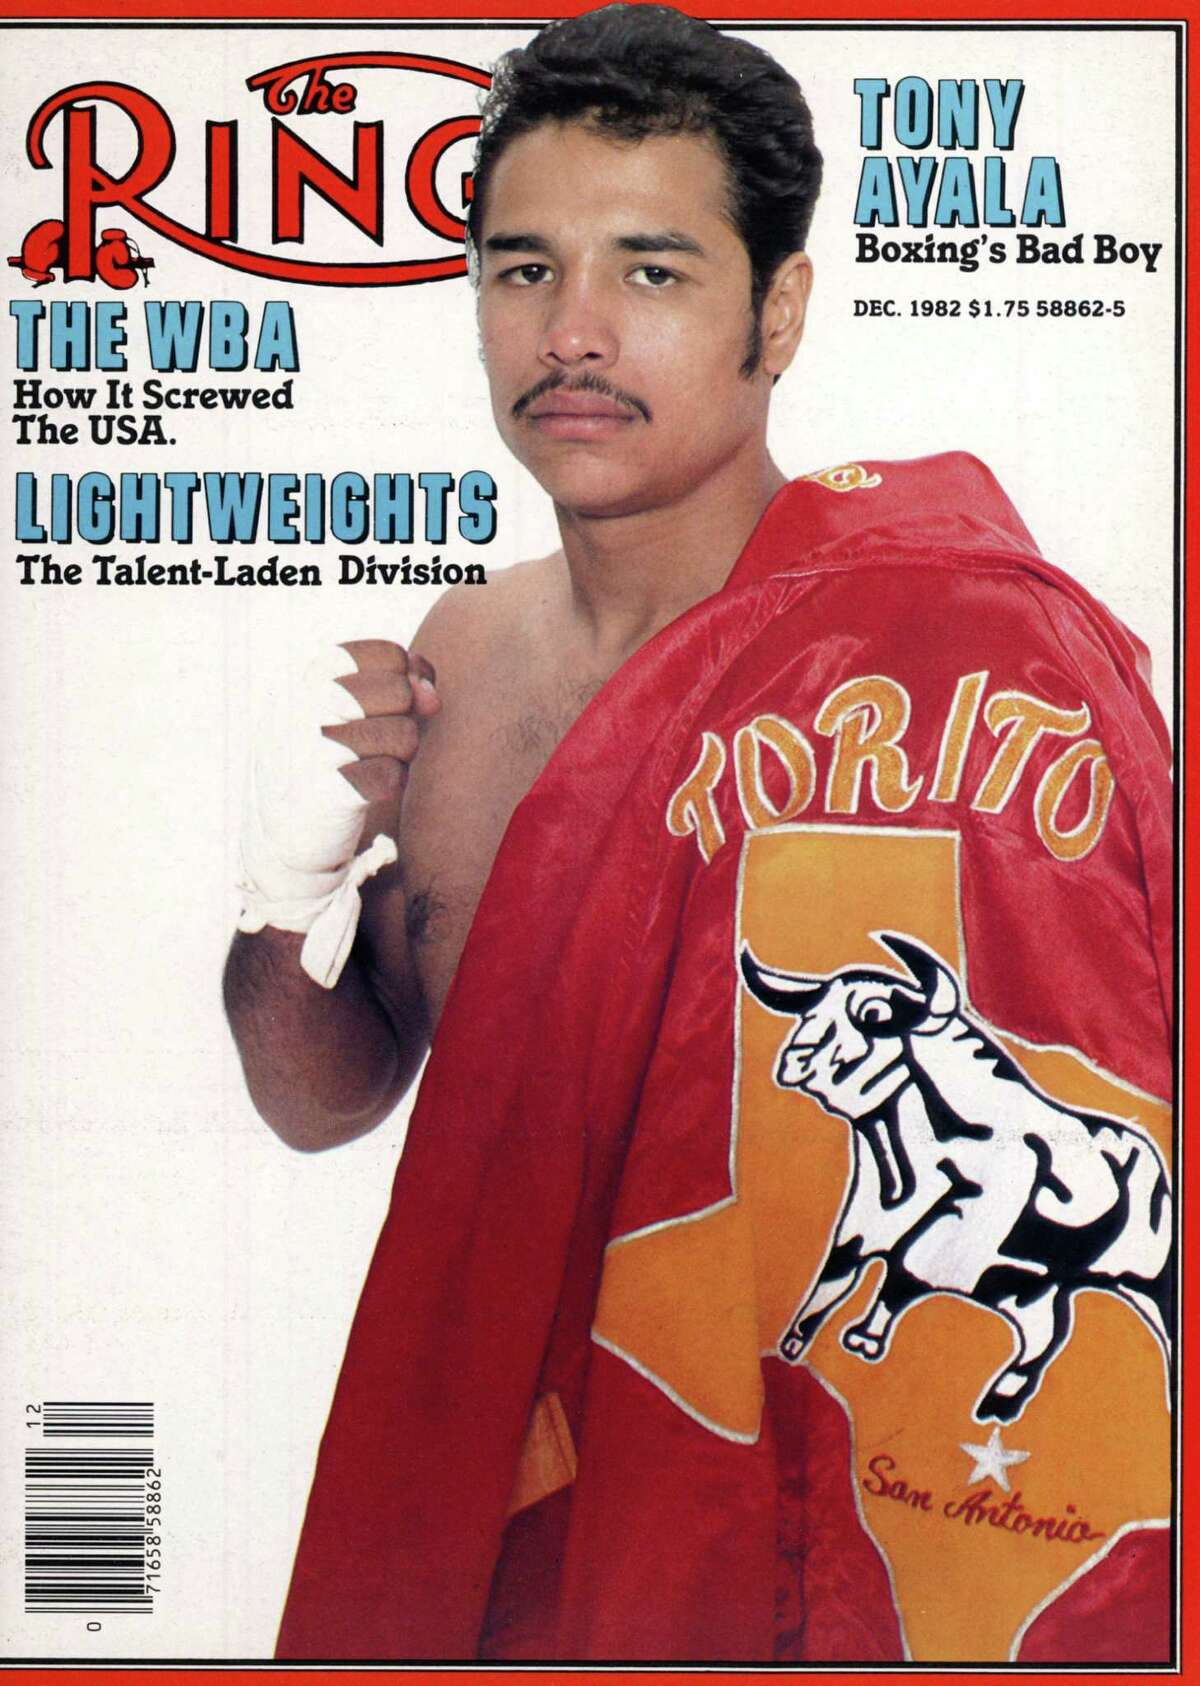 Tony Ayala Jr. on the cover of Ring magazine in the December 1982 issue.